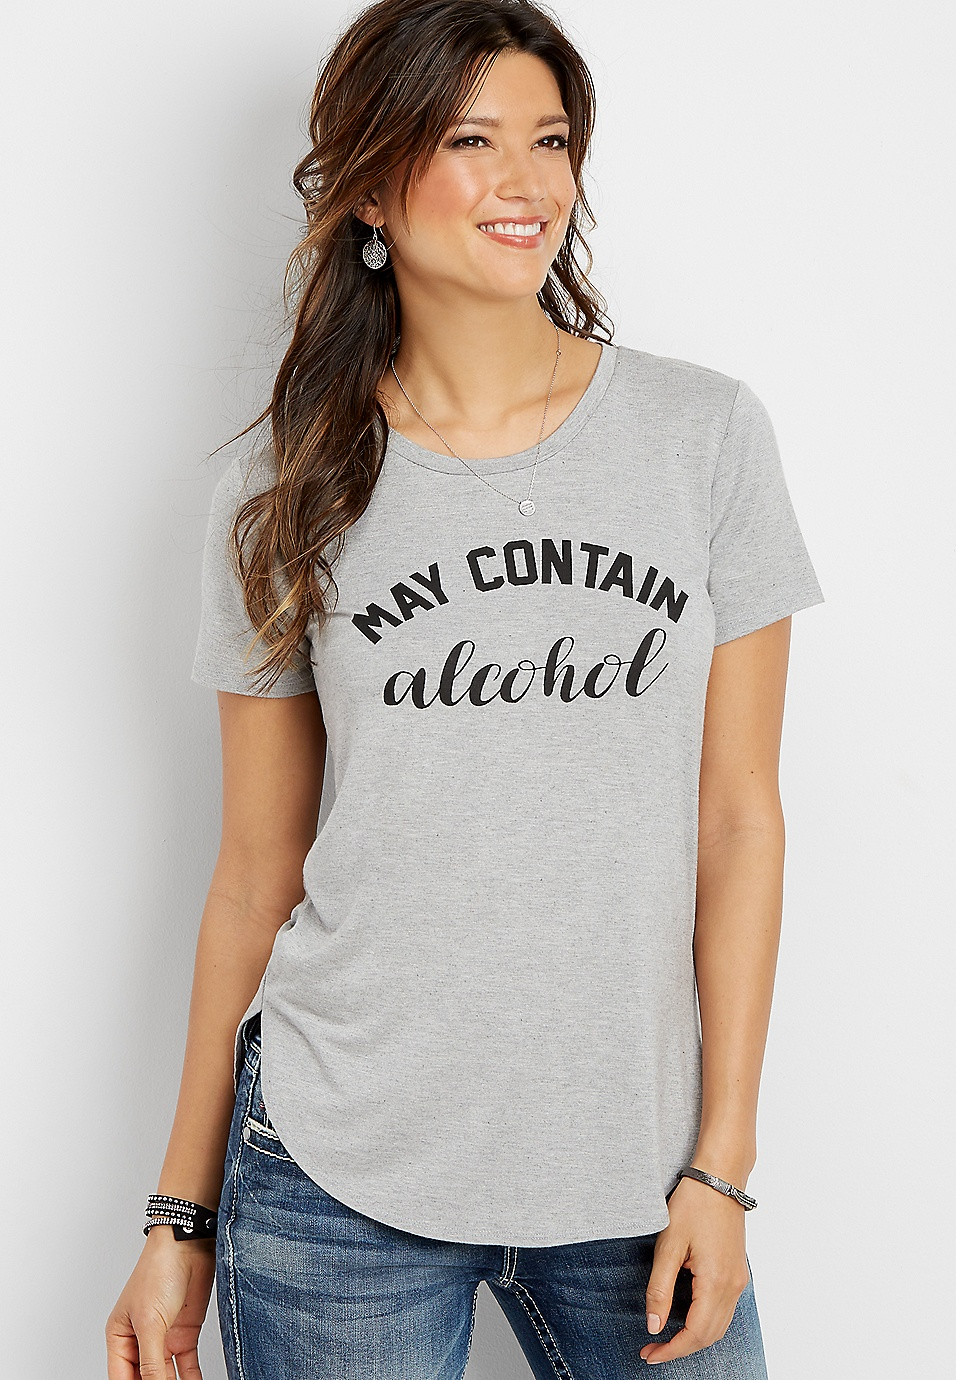 65e111db336 may contain alcohol graphic tee